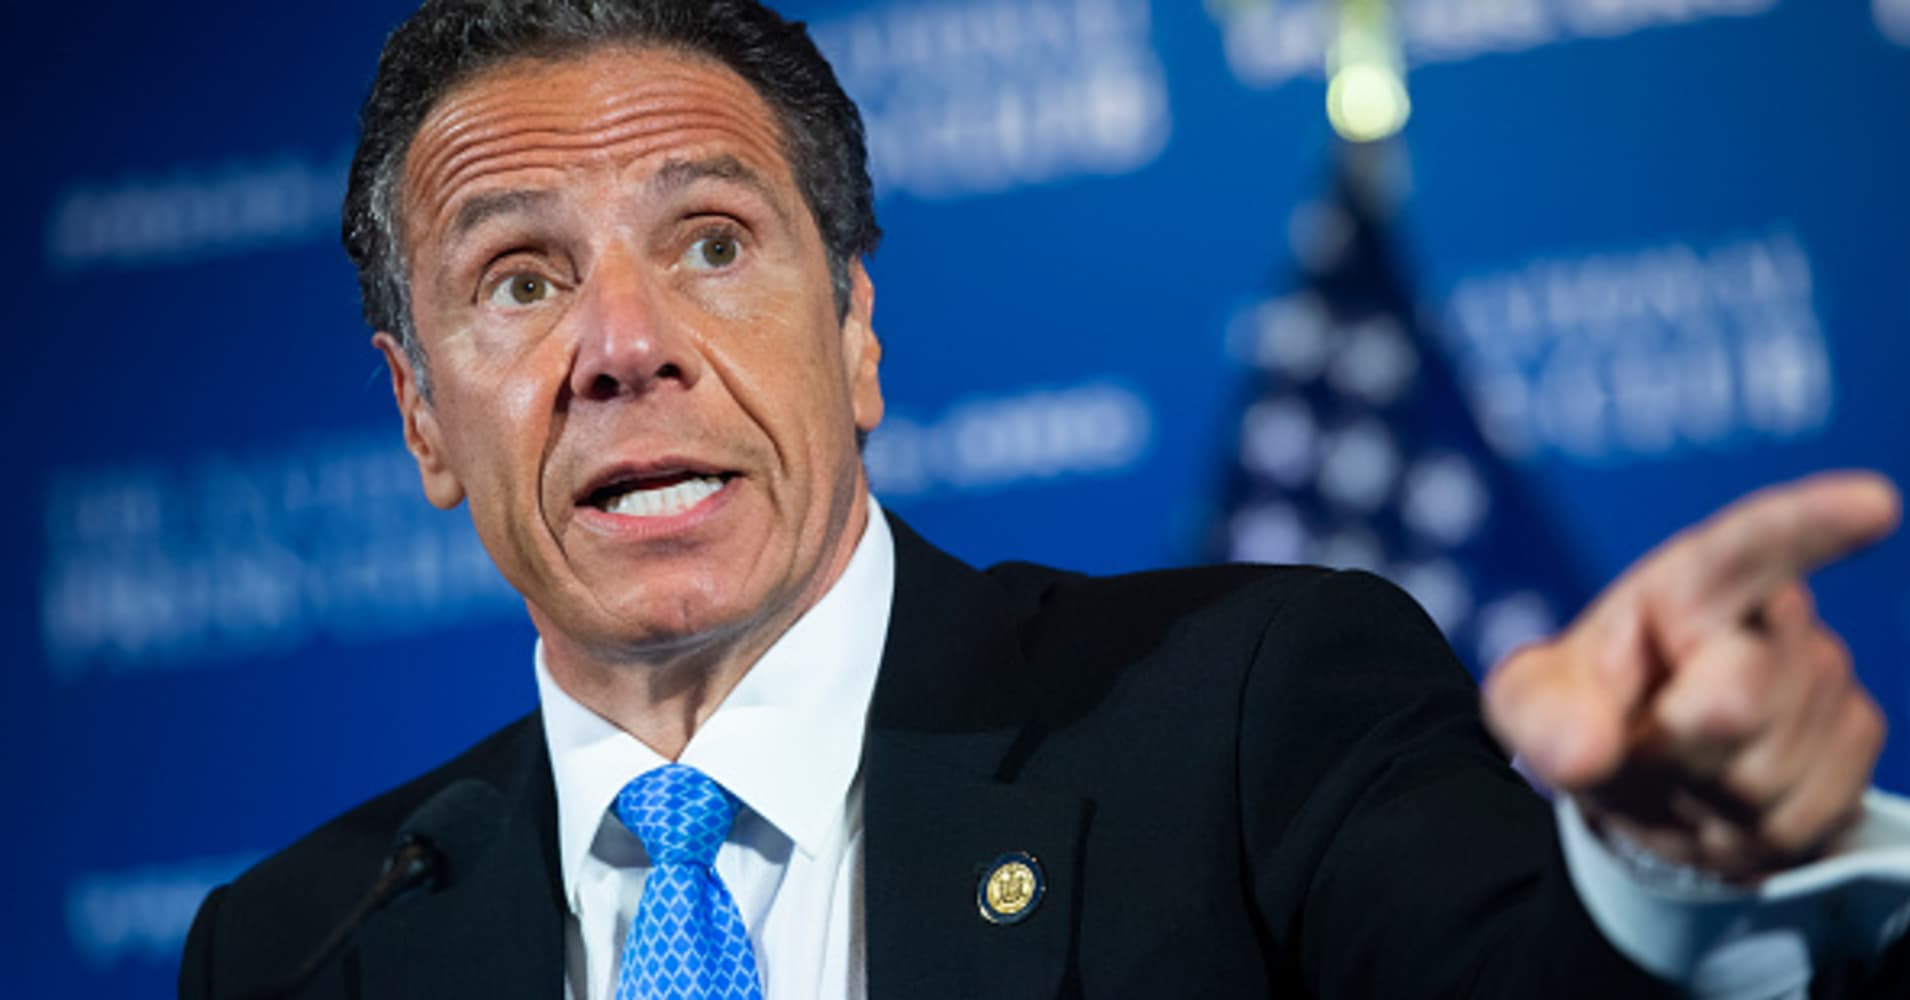 New York Gov. Andrew Cuomo briefs press on the coronavirus amid nationwide protests over George Floyd killing